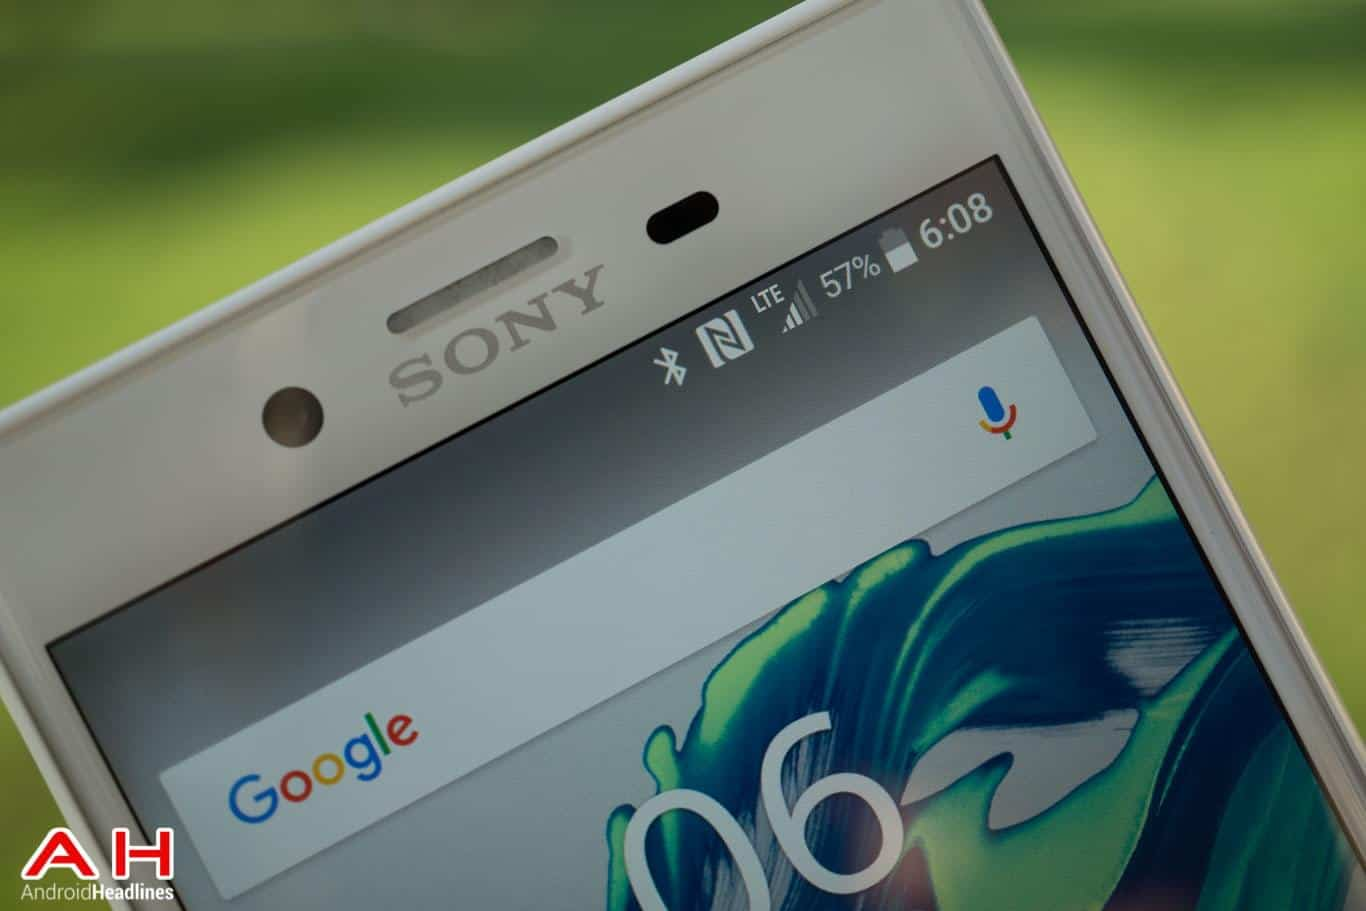 Sony Xperia X Compact AH 9 review sony xperia x compact androidheadlines com  at creativeand.co